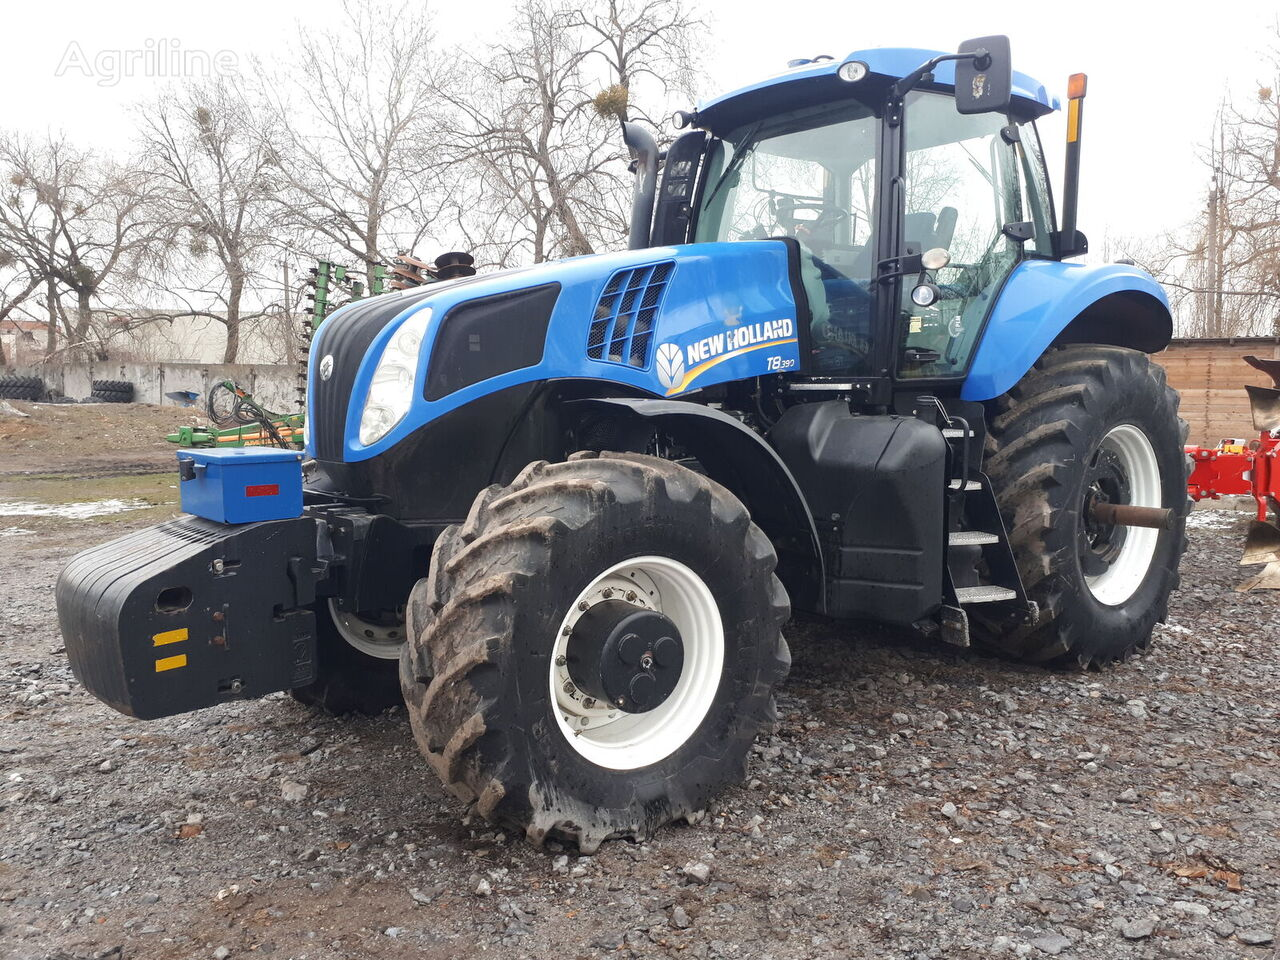 NEW HOLLAND  T8.390  2013 wheel tractor